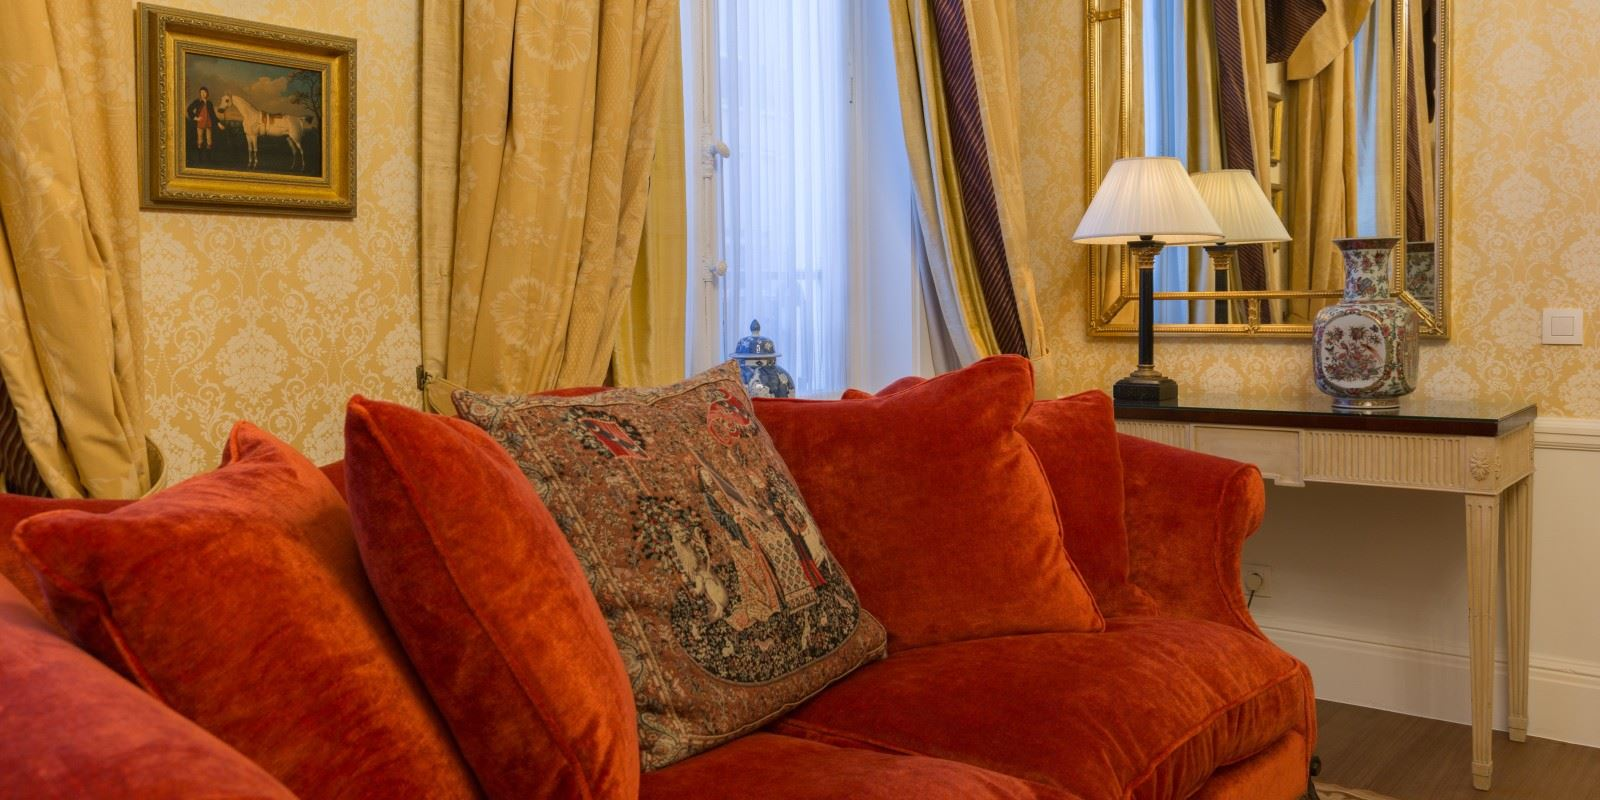 Sofa i royal suite